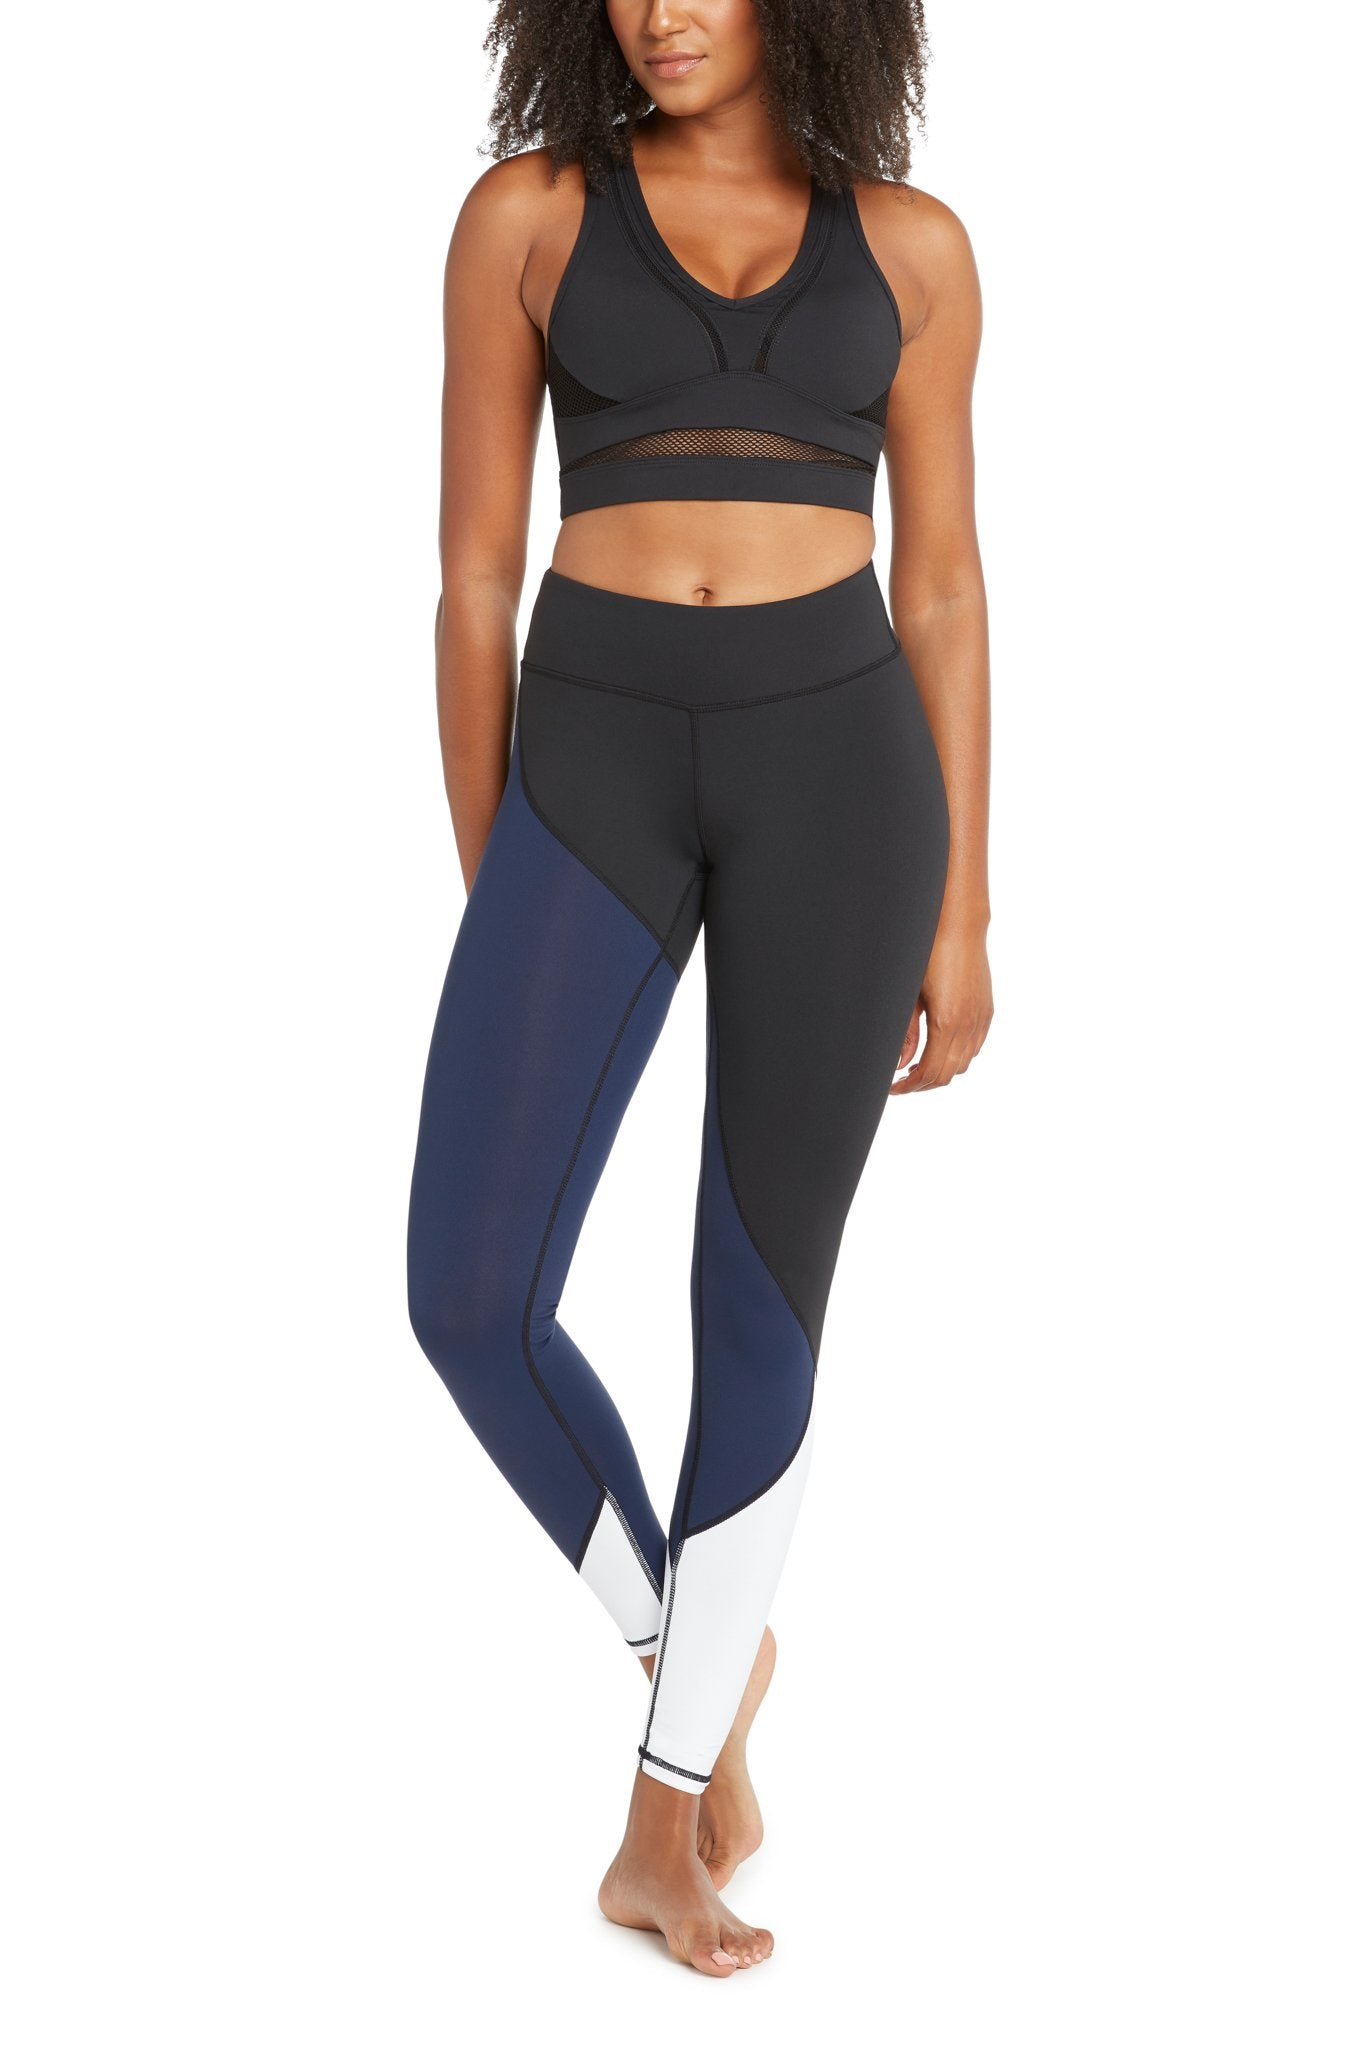 Bianca I Mid-Waist Color Block Women's Activewear Leggings